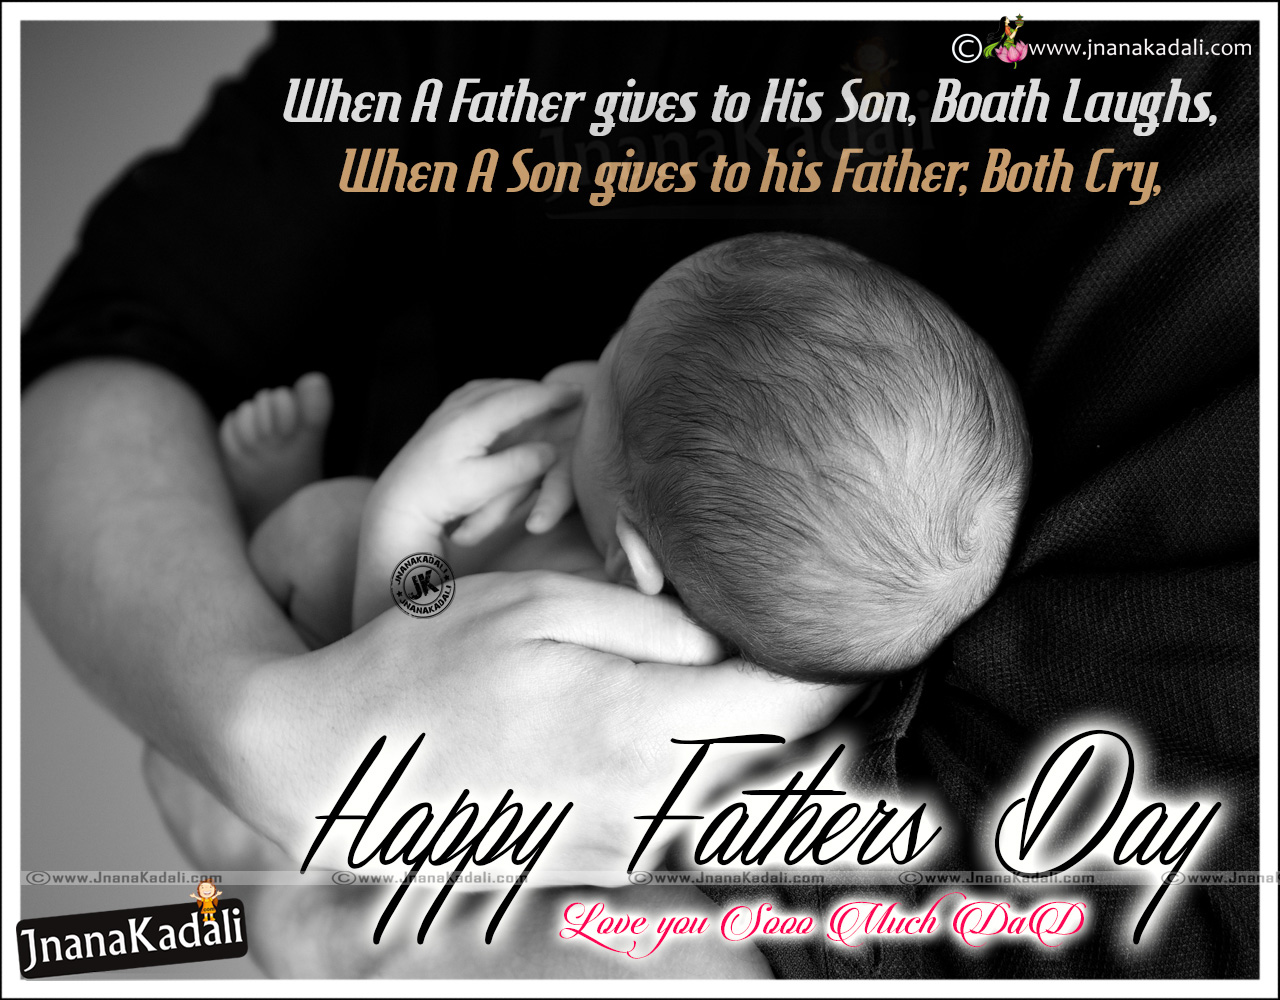 Happy Fathers Day 2016 English Greetings Wishes Jnana Kadali